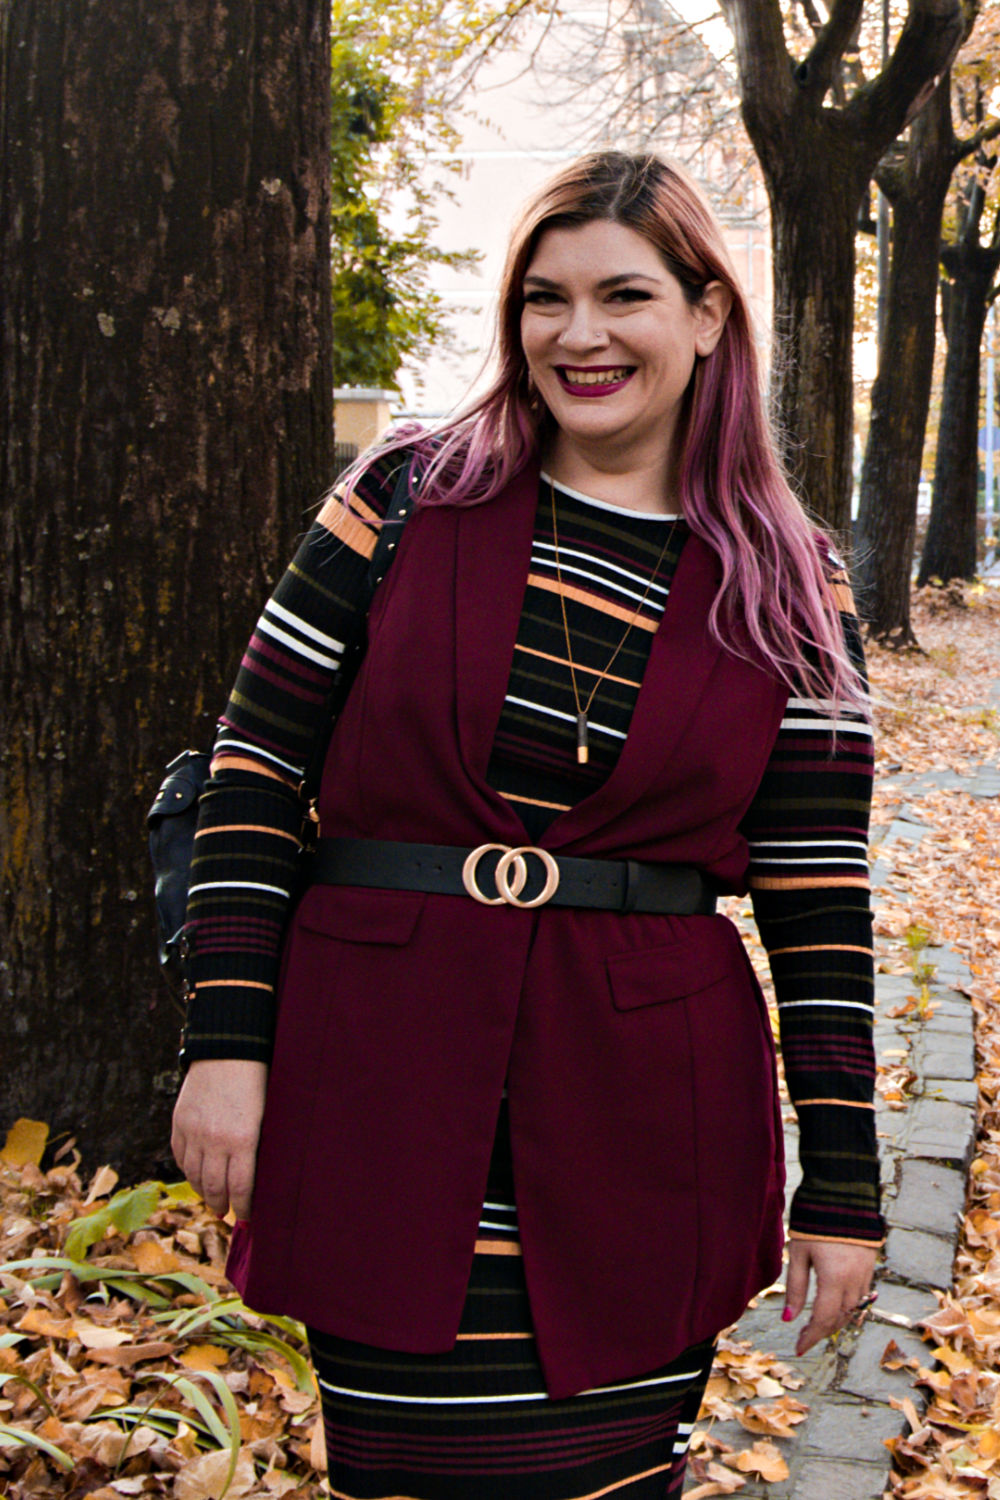 Outfit curvy, plus size, come indossare un vestito aderente, bodycon (11)